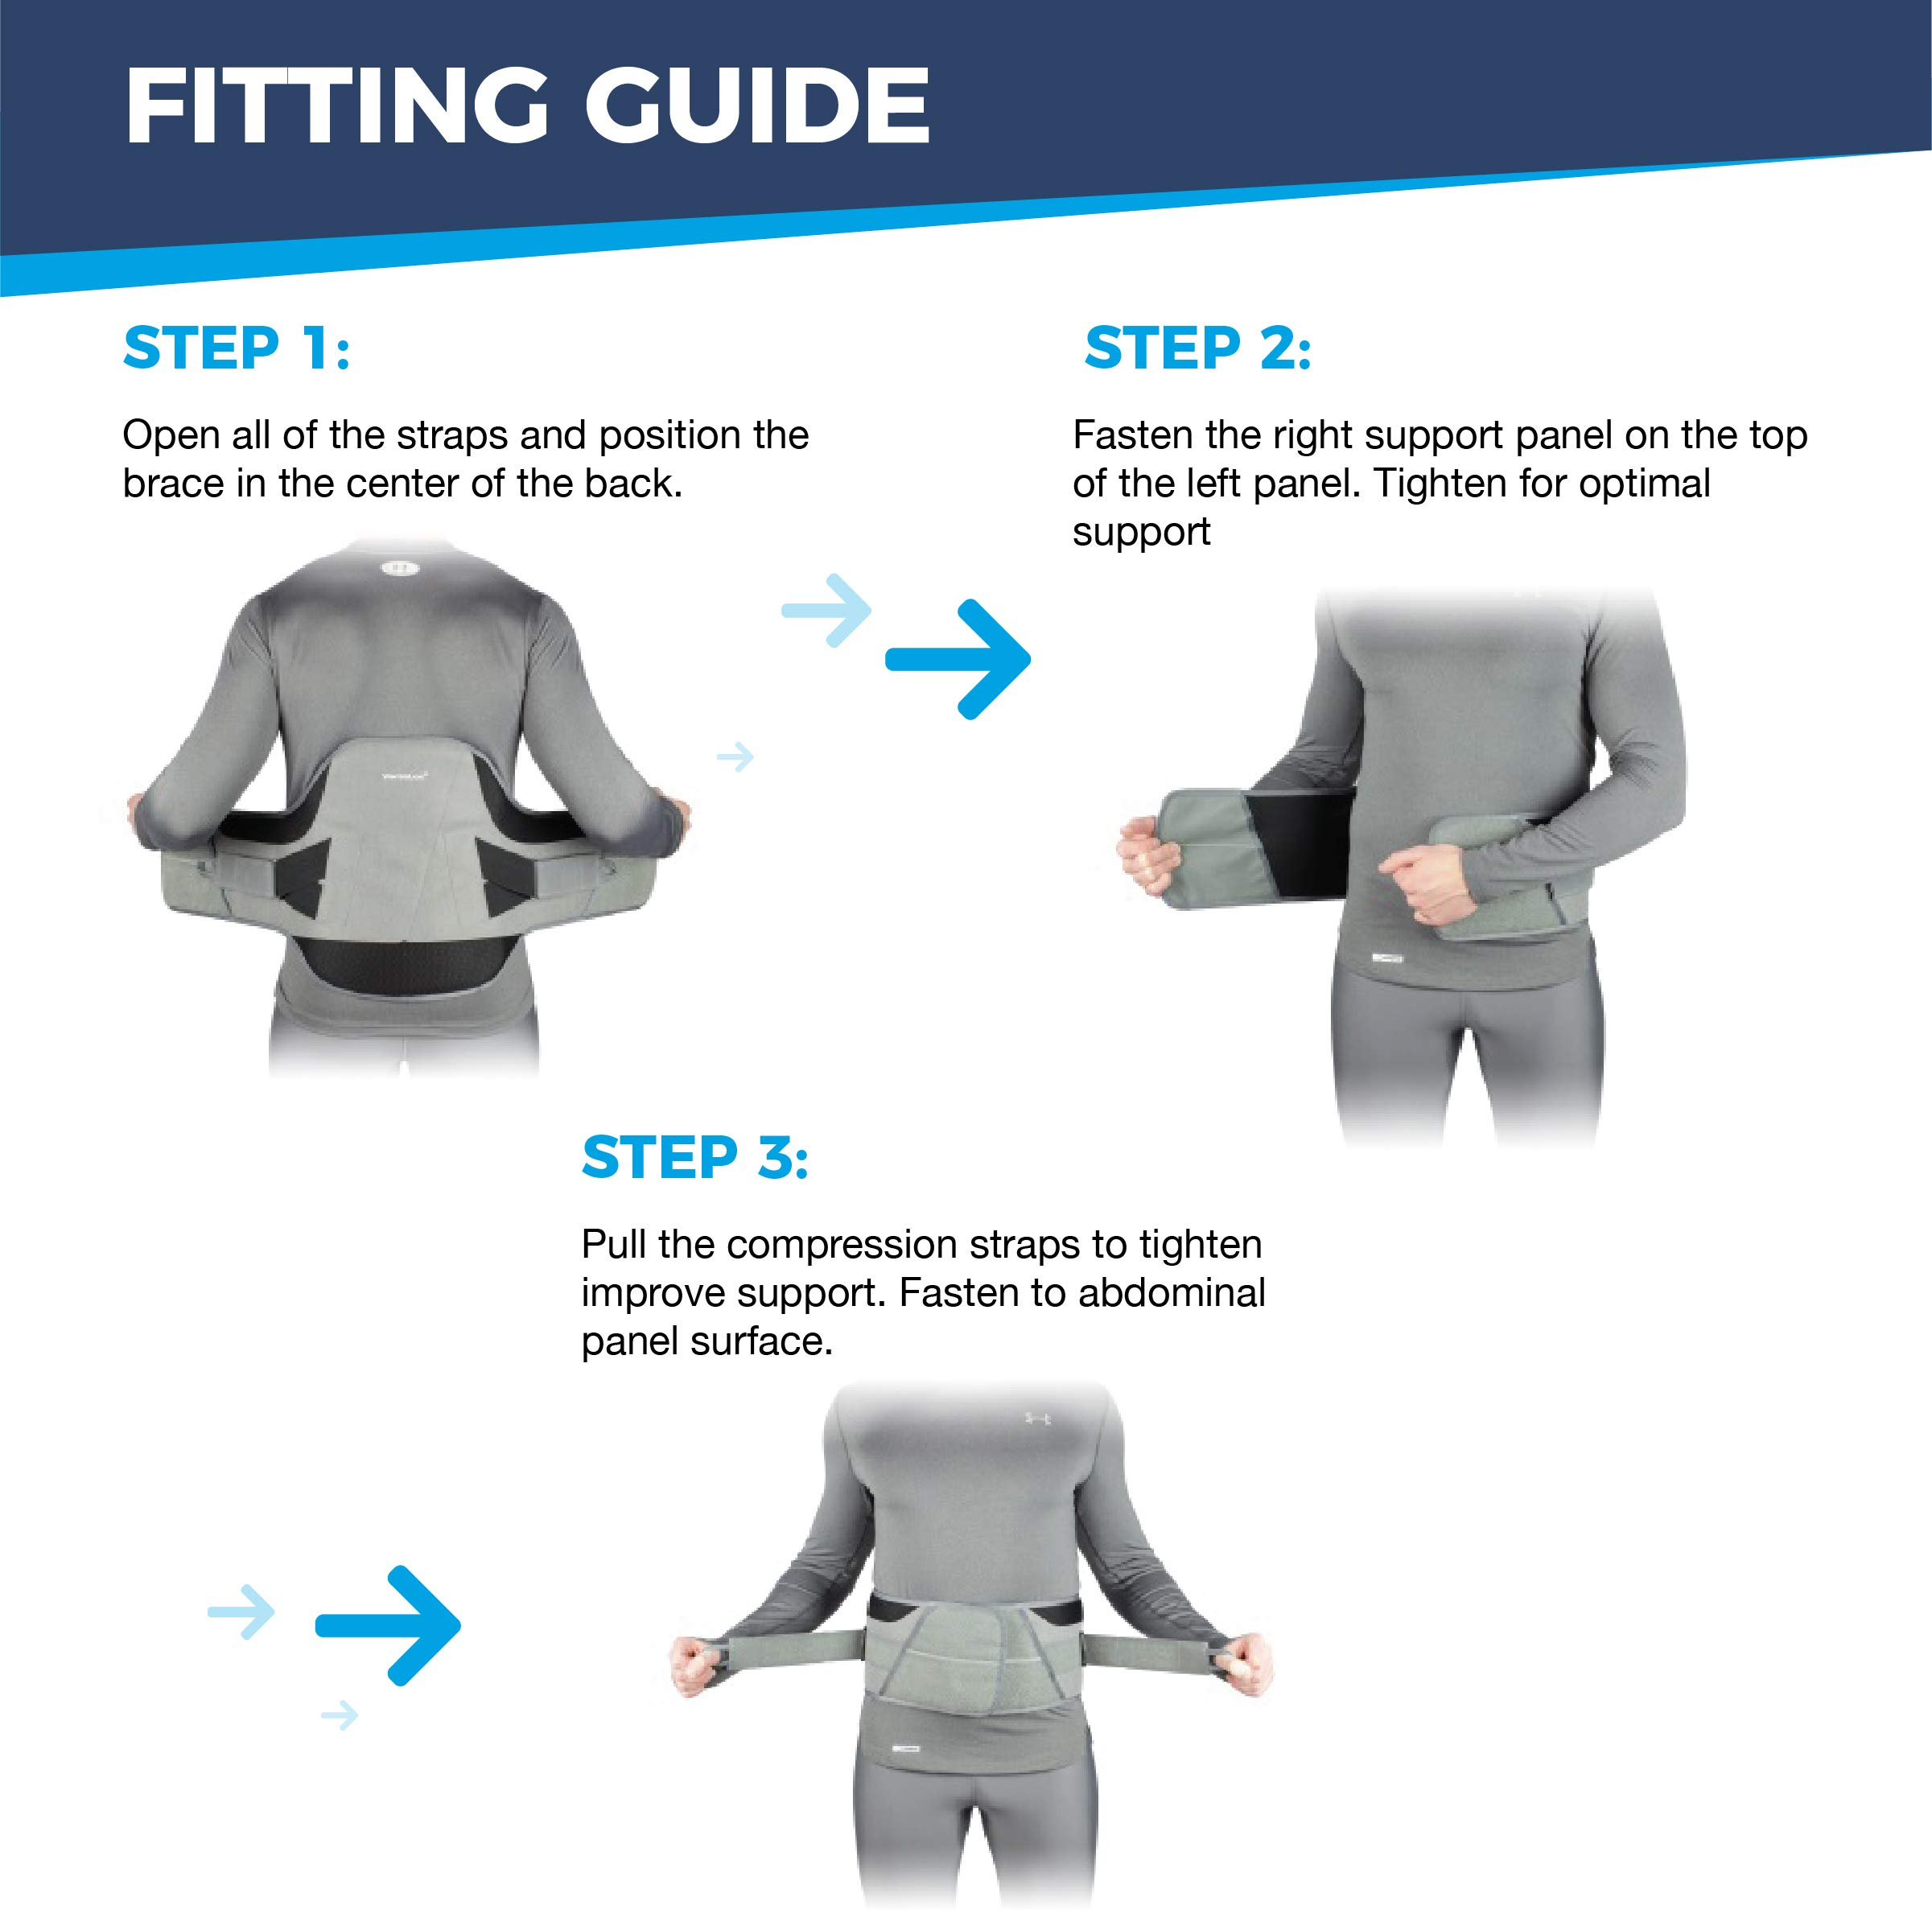 VertaLoc Flex FIT Medical Grade Back Brace and Support for Lower Back Pain - Extra Large by VERTALOC, INC. (Image #5)